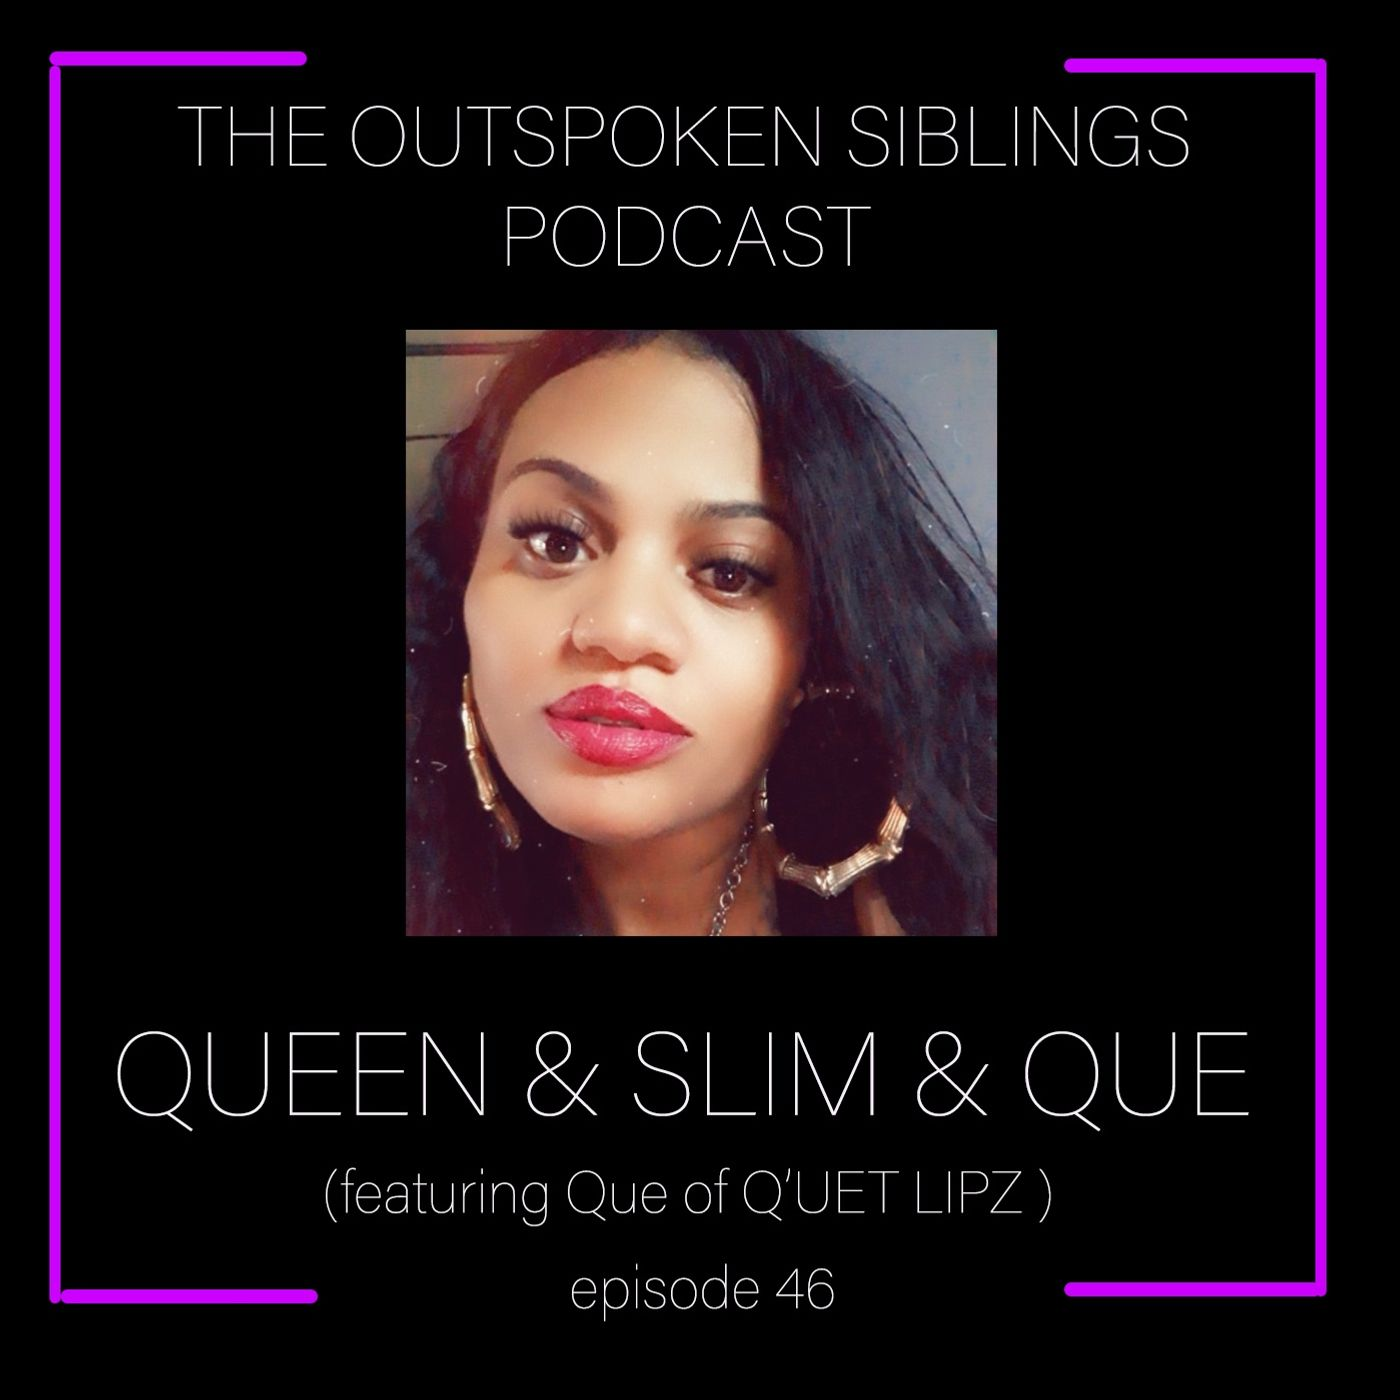 Queen & Slim & Que (Feat. Que of Q'uet Lipz)